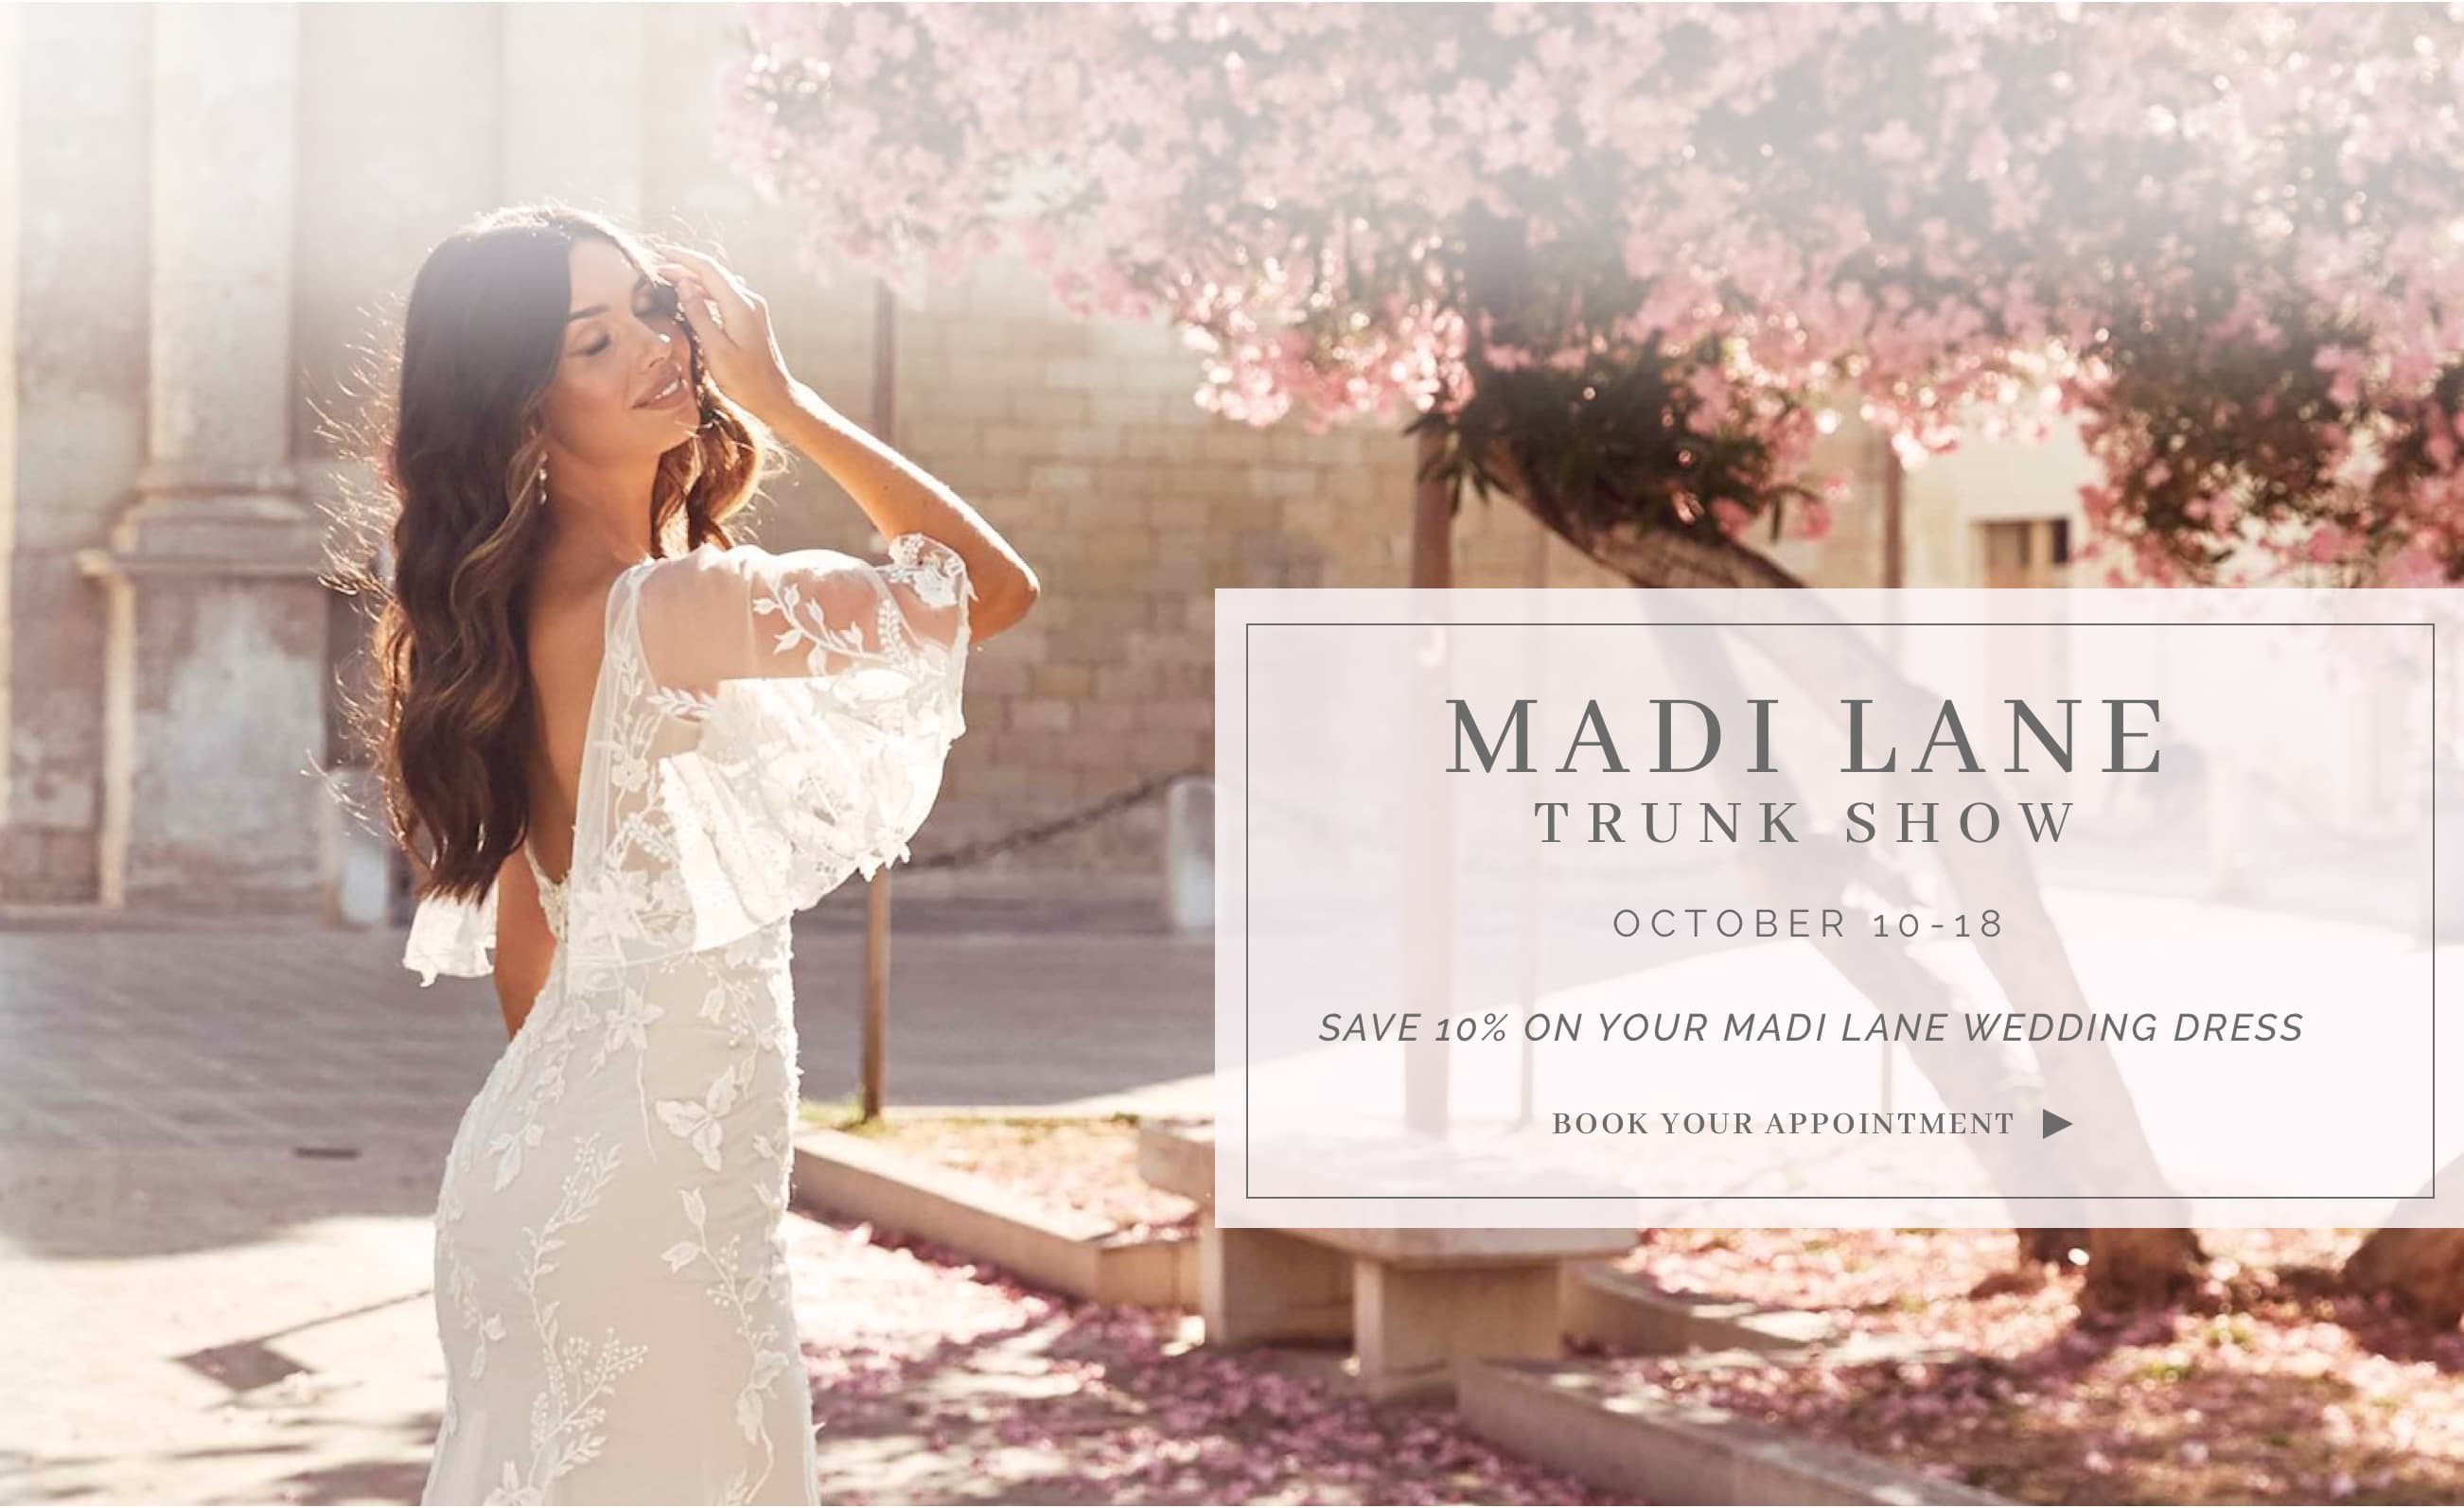 Madi Lane Trunk Show October 10-18. Desktop Image